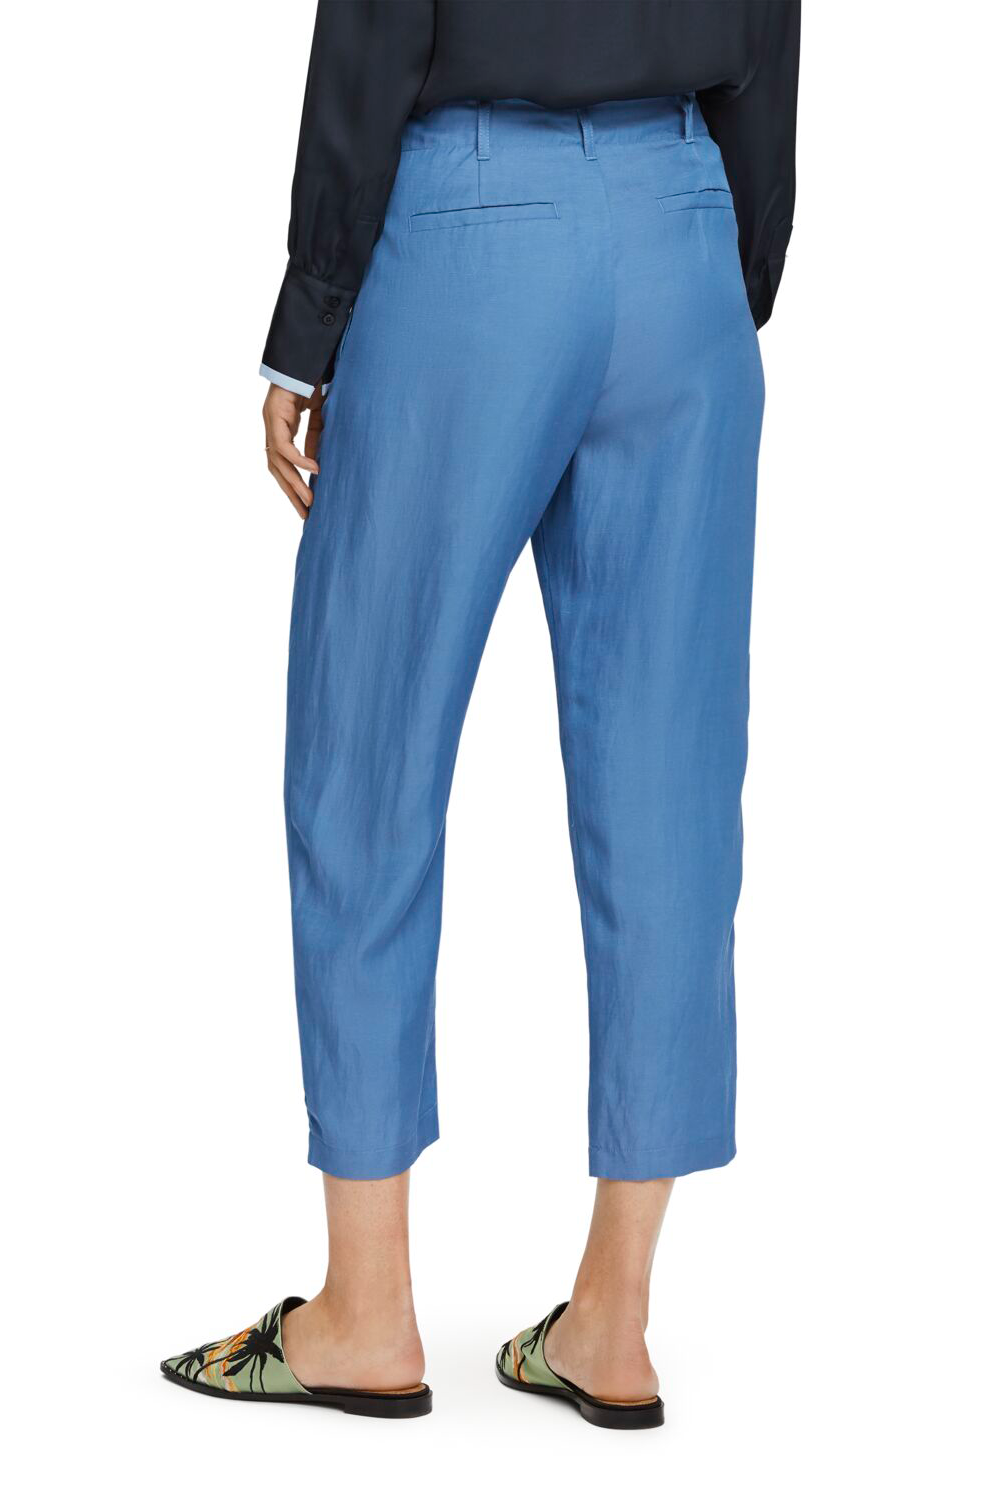 Maison Scotch / Tailored Pants / Azure Blue